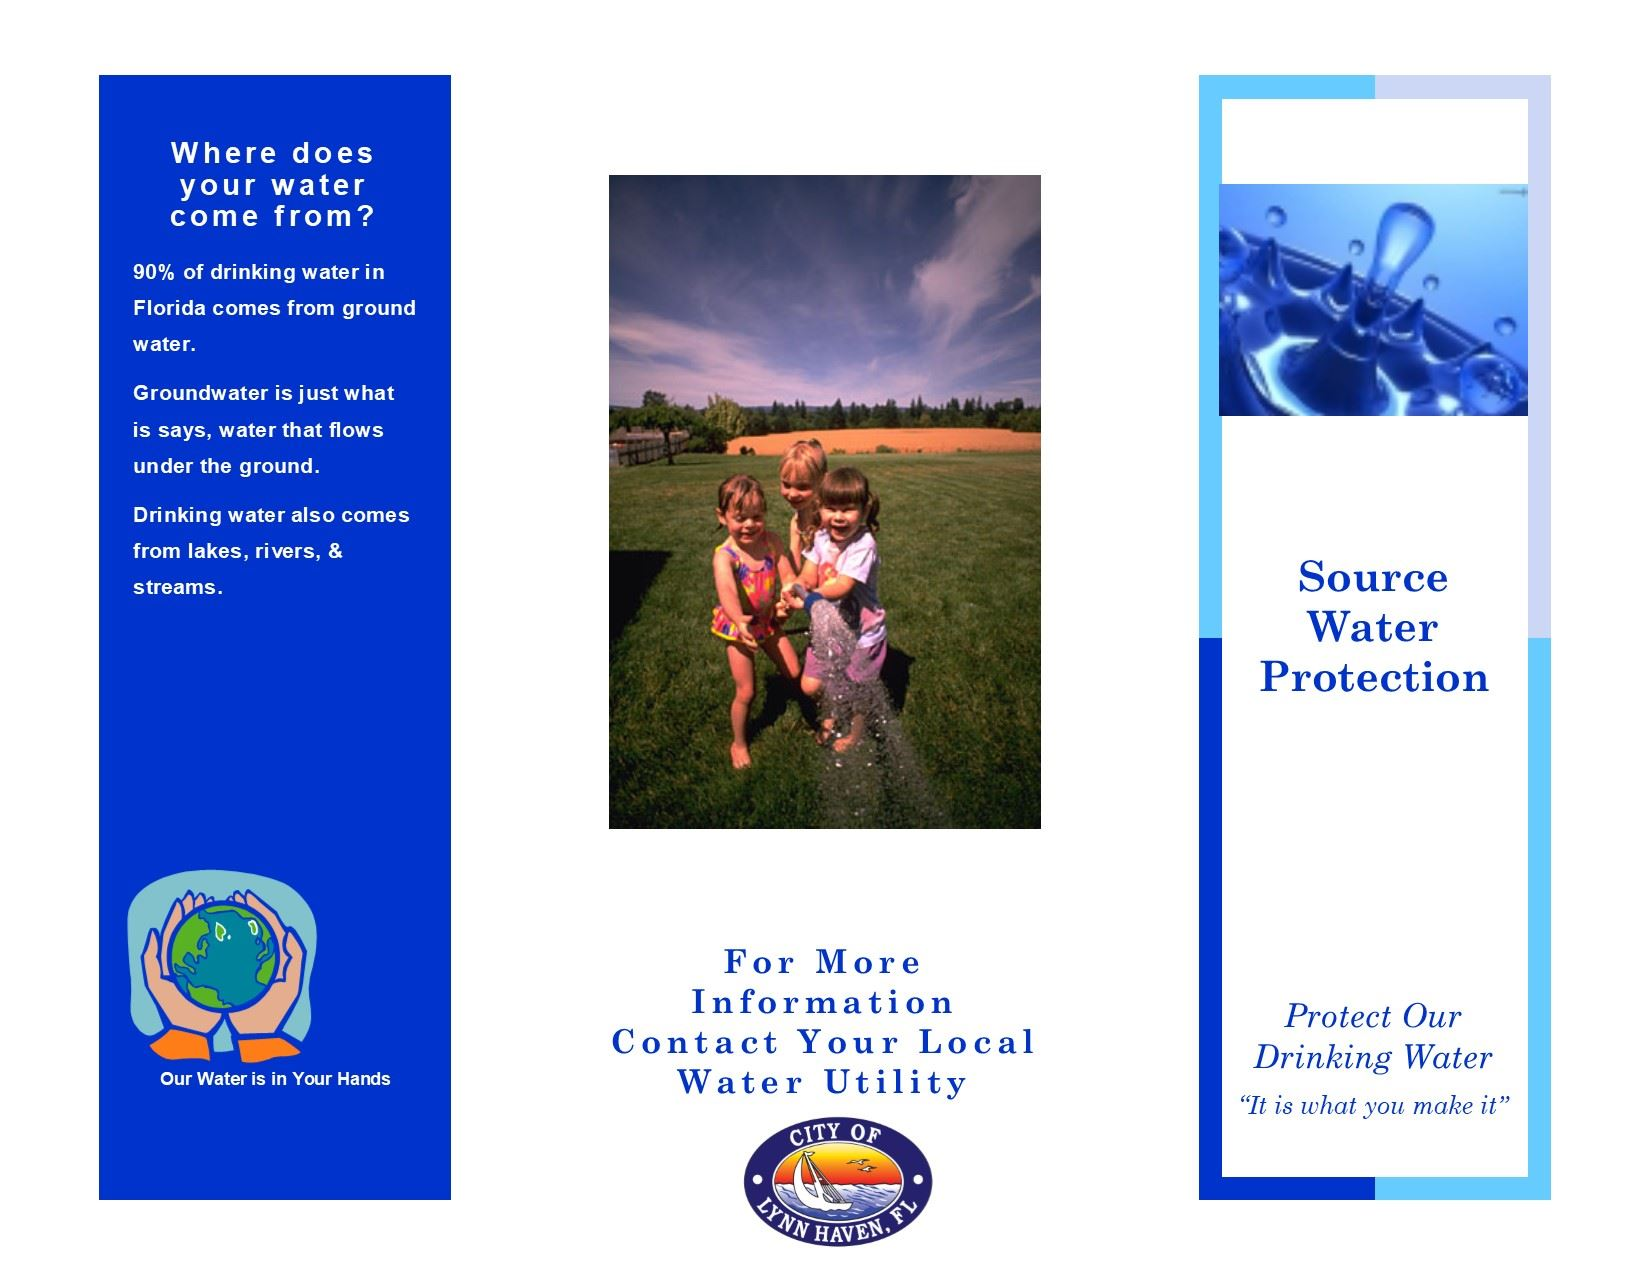 Source Water Protection Brochure Side 1